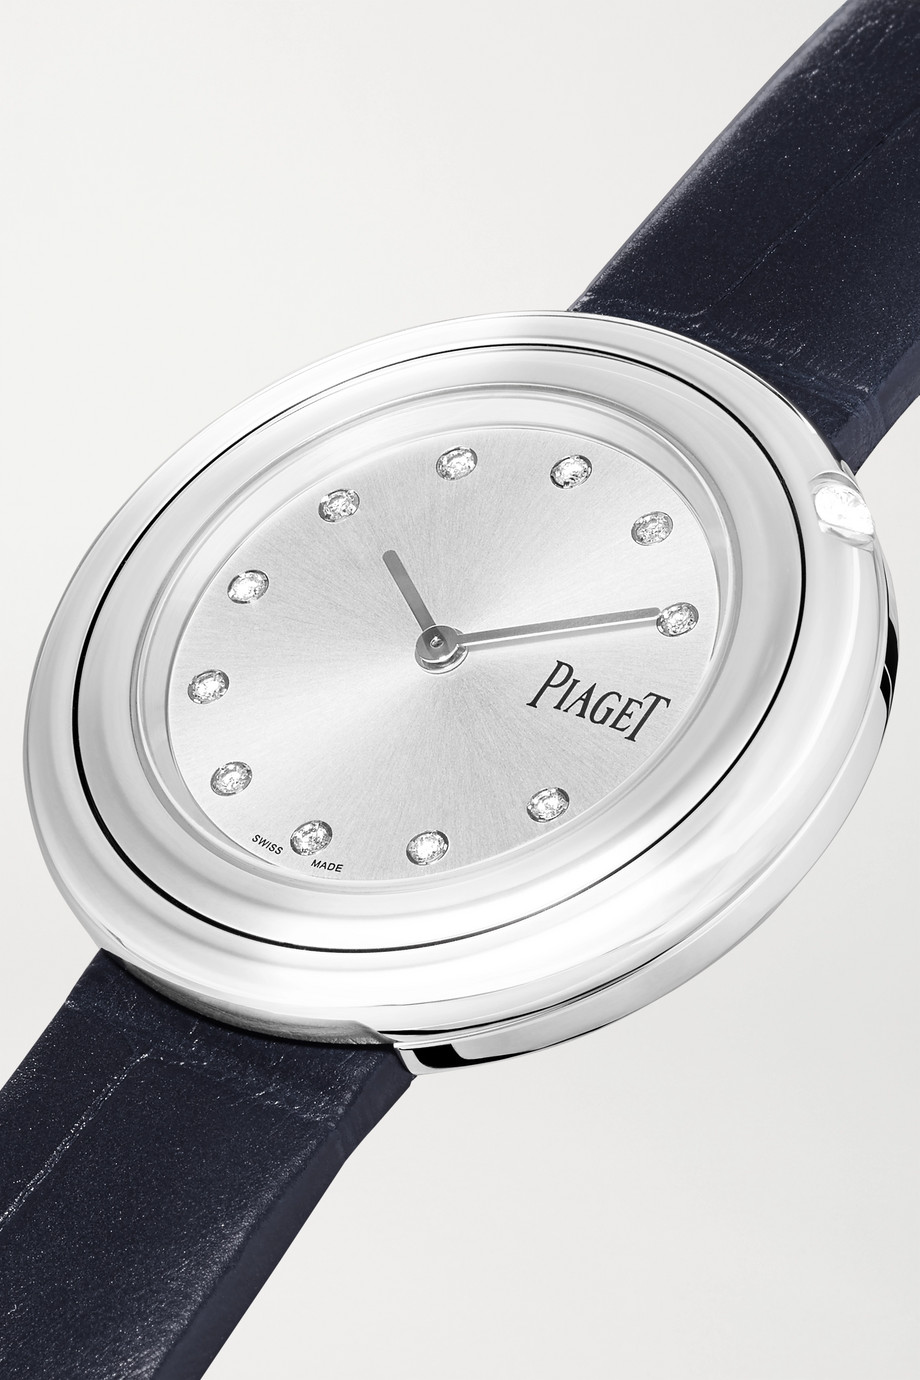 Piaget Possession 34mm stainless steel, alligator and diamond watch